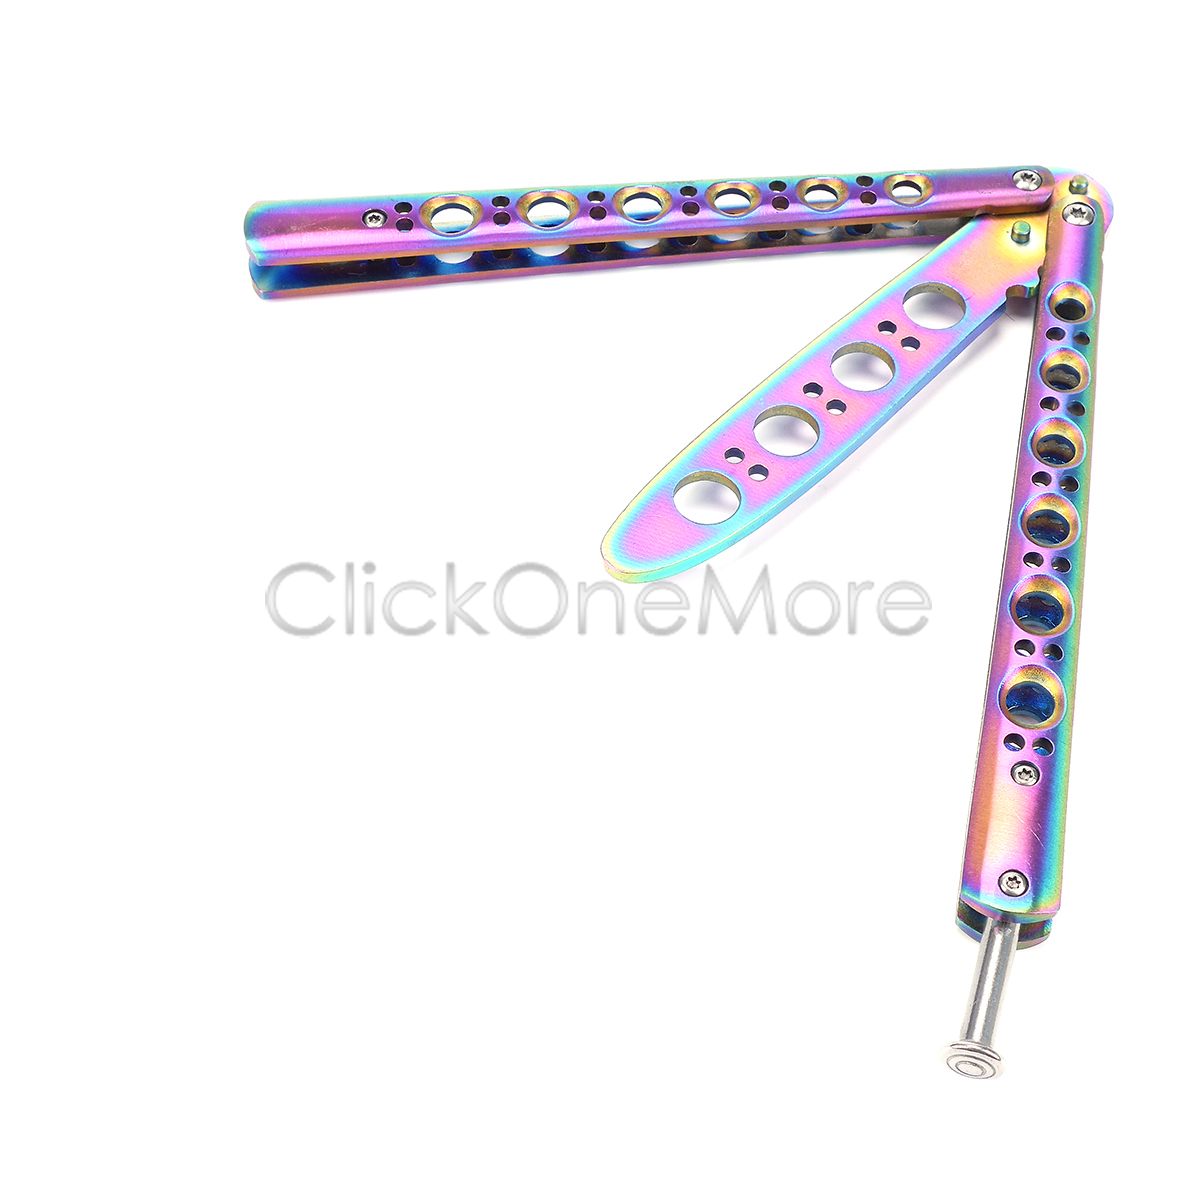 rainbow butterfly knife bing images. Black Bedroom Furniture Sets. Home Design Ideas